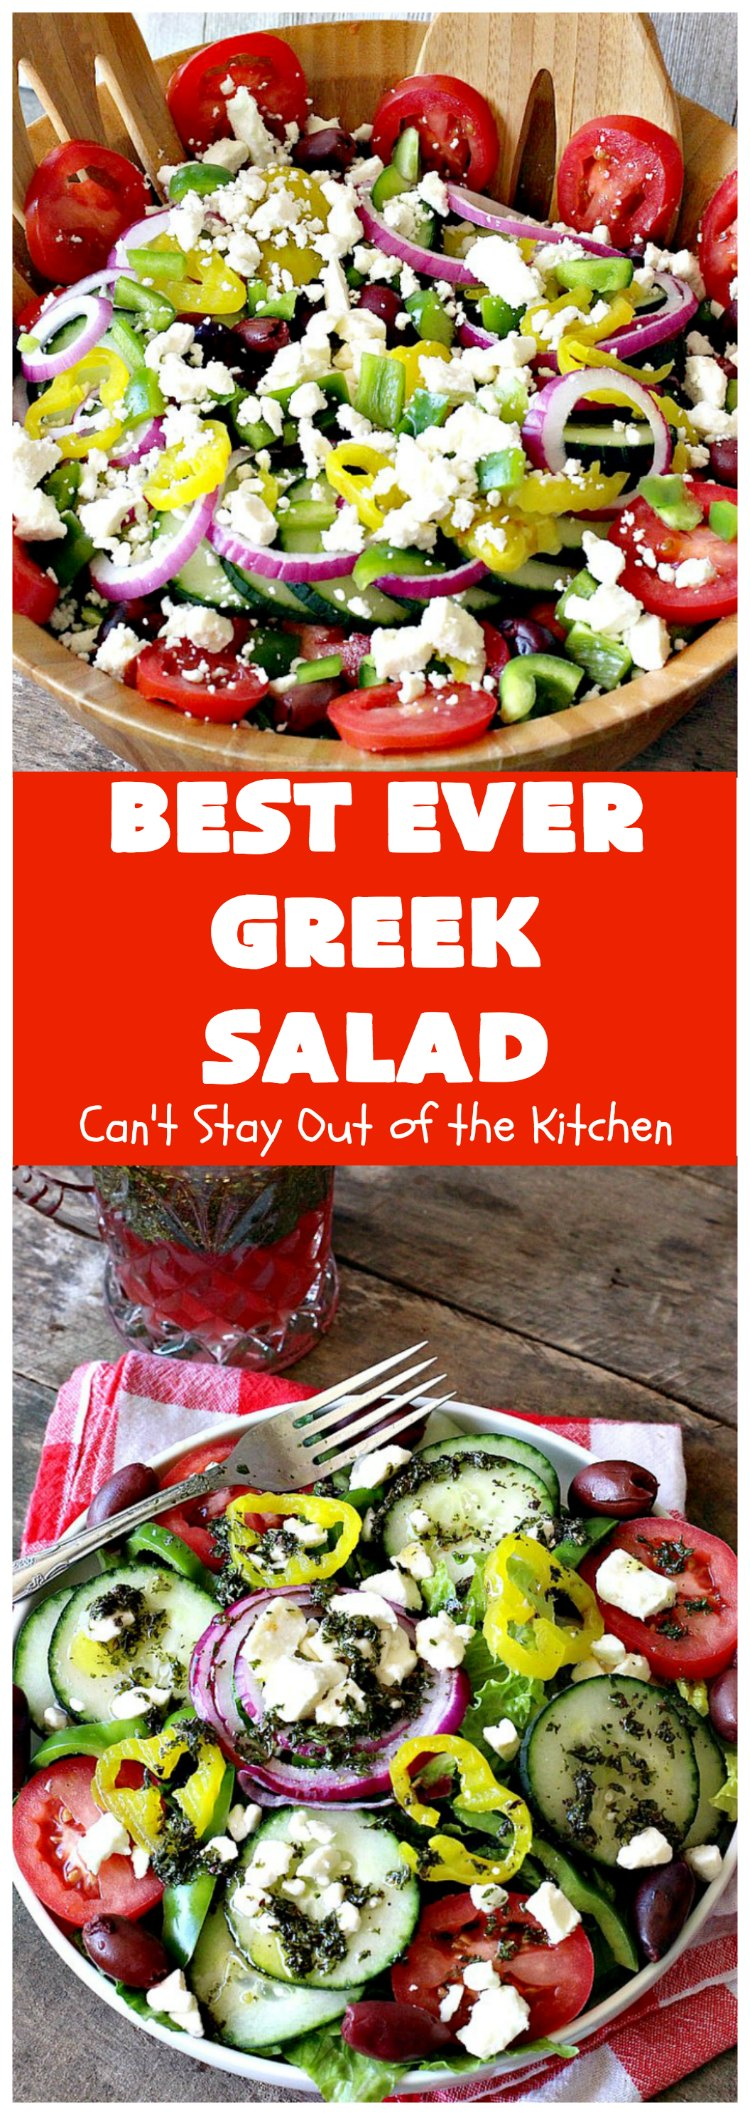 Best Ever Greek Salad | Can't Stay Out of the Kitchen